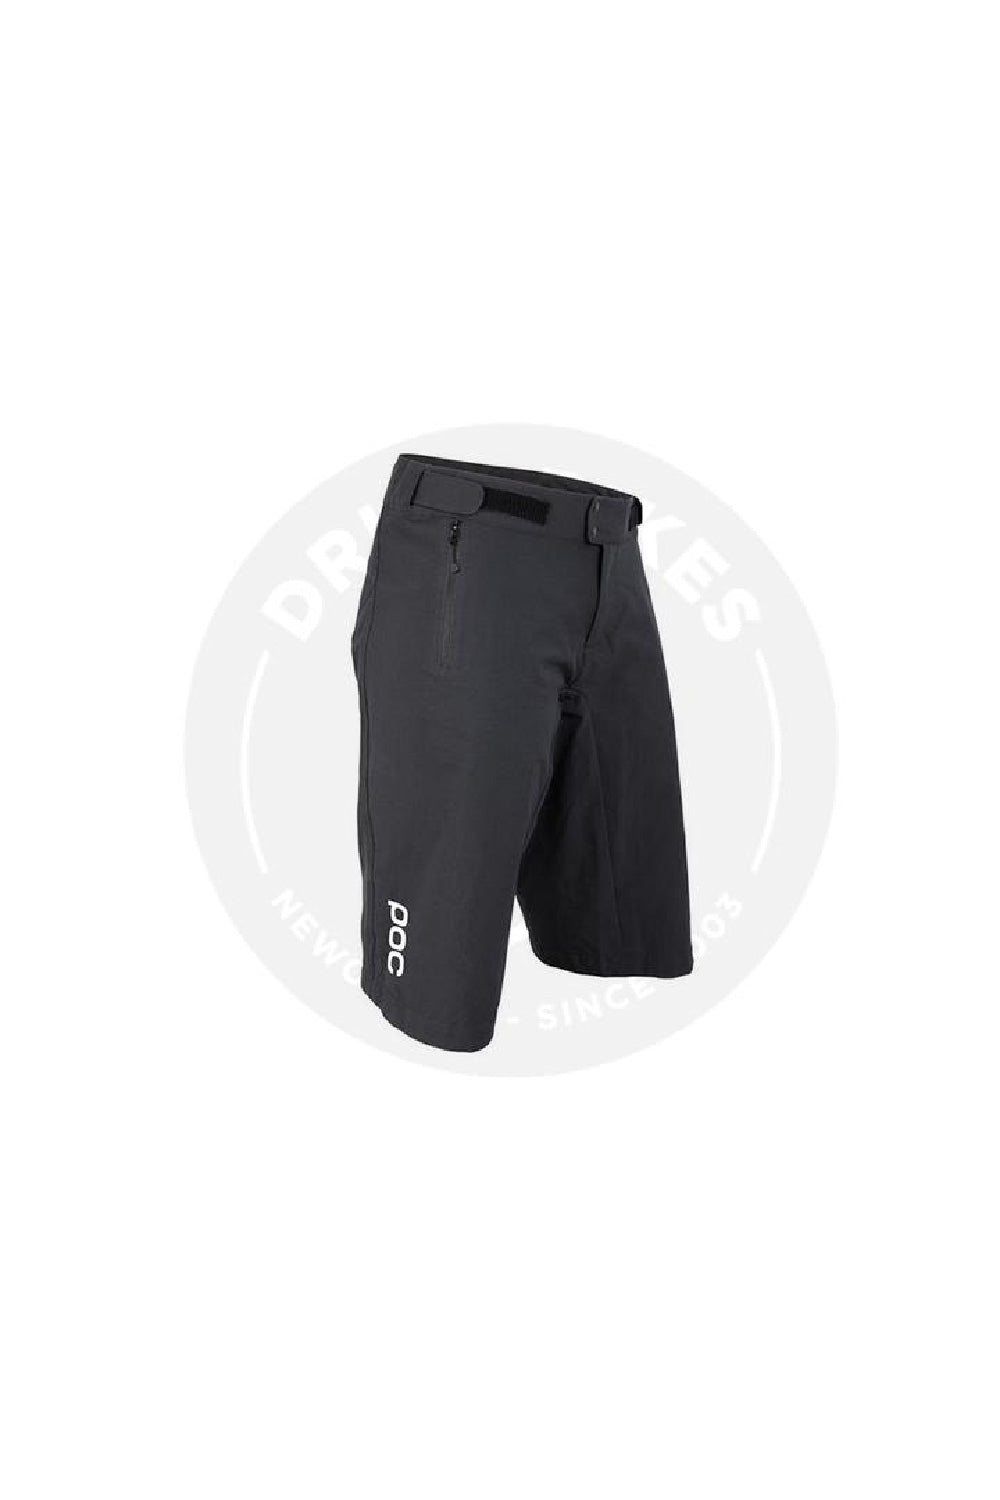 POC - Resistance Enduro Light Womens Shorts